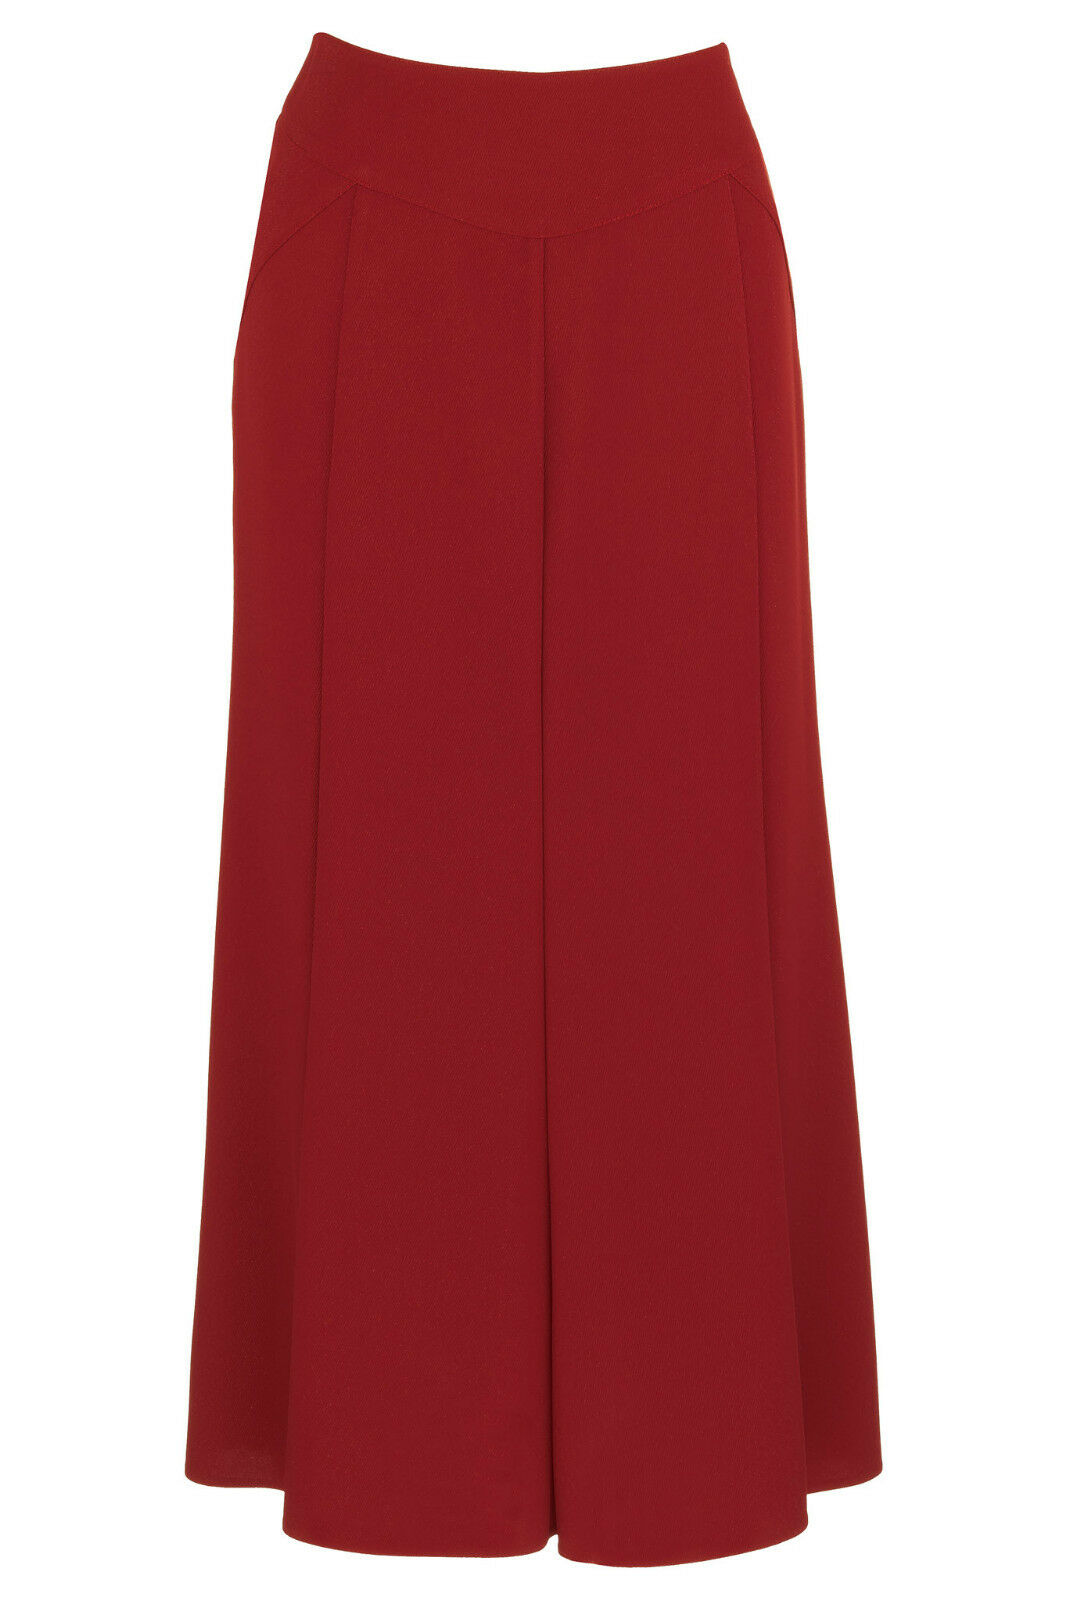 Busy Sparkle Red Long Flared Skirt